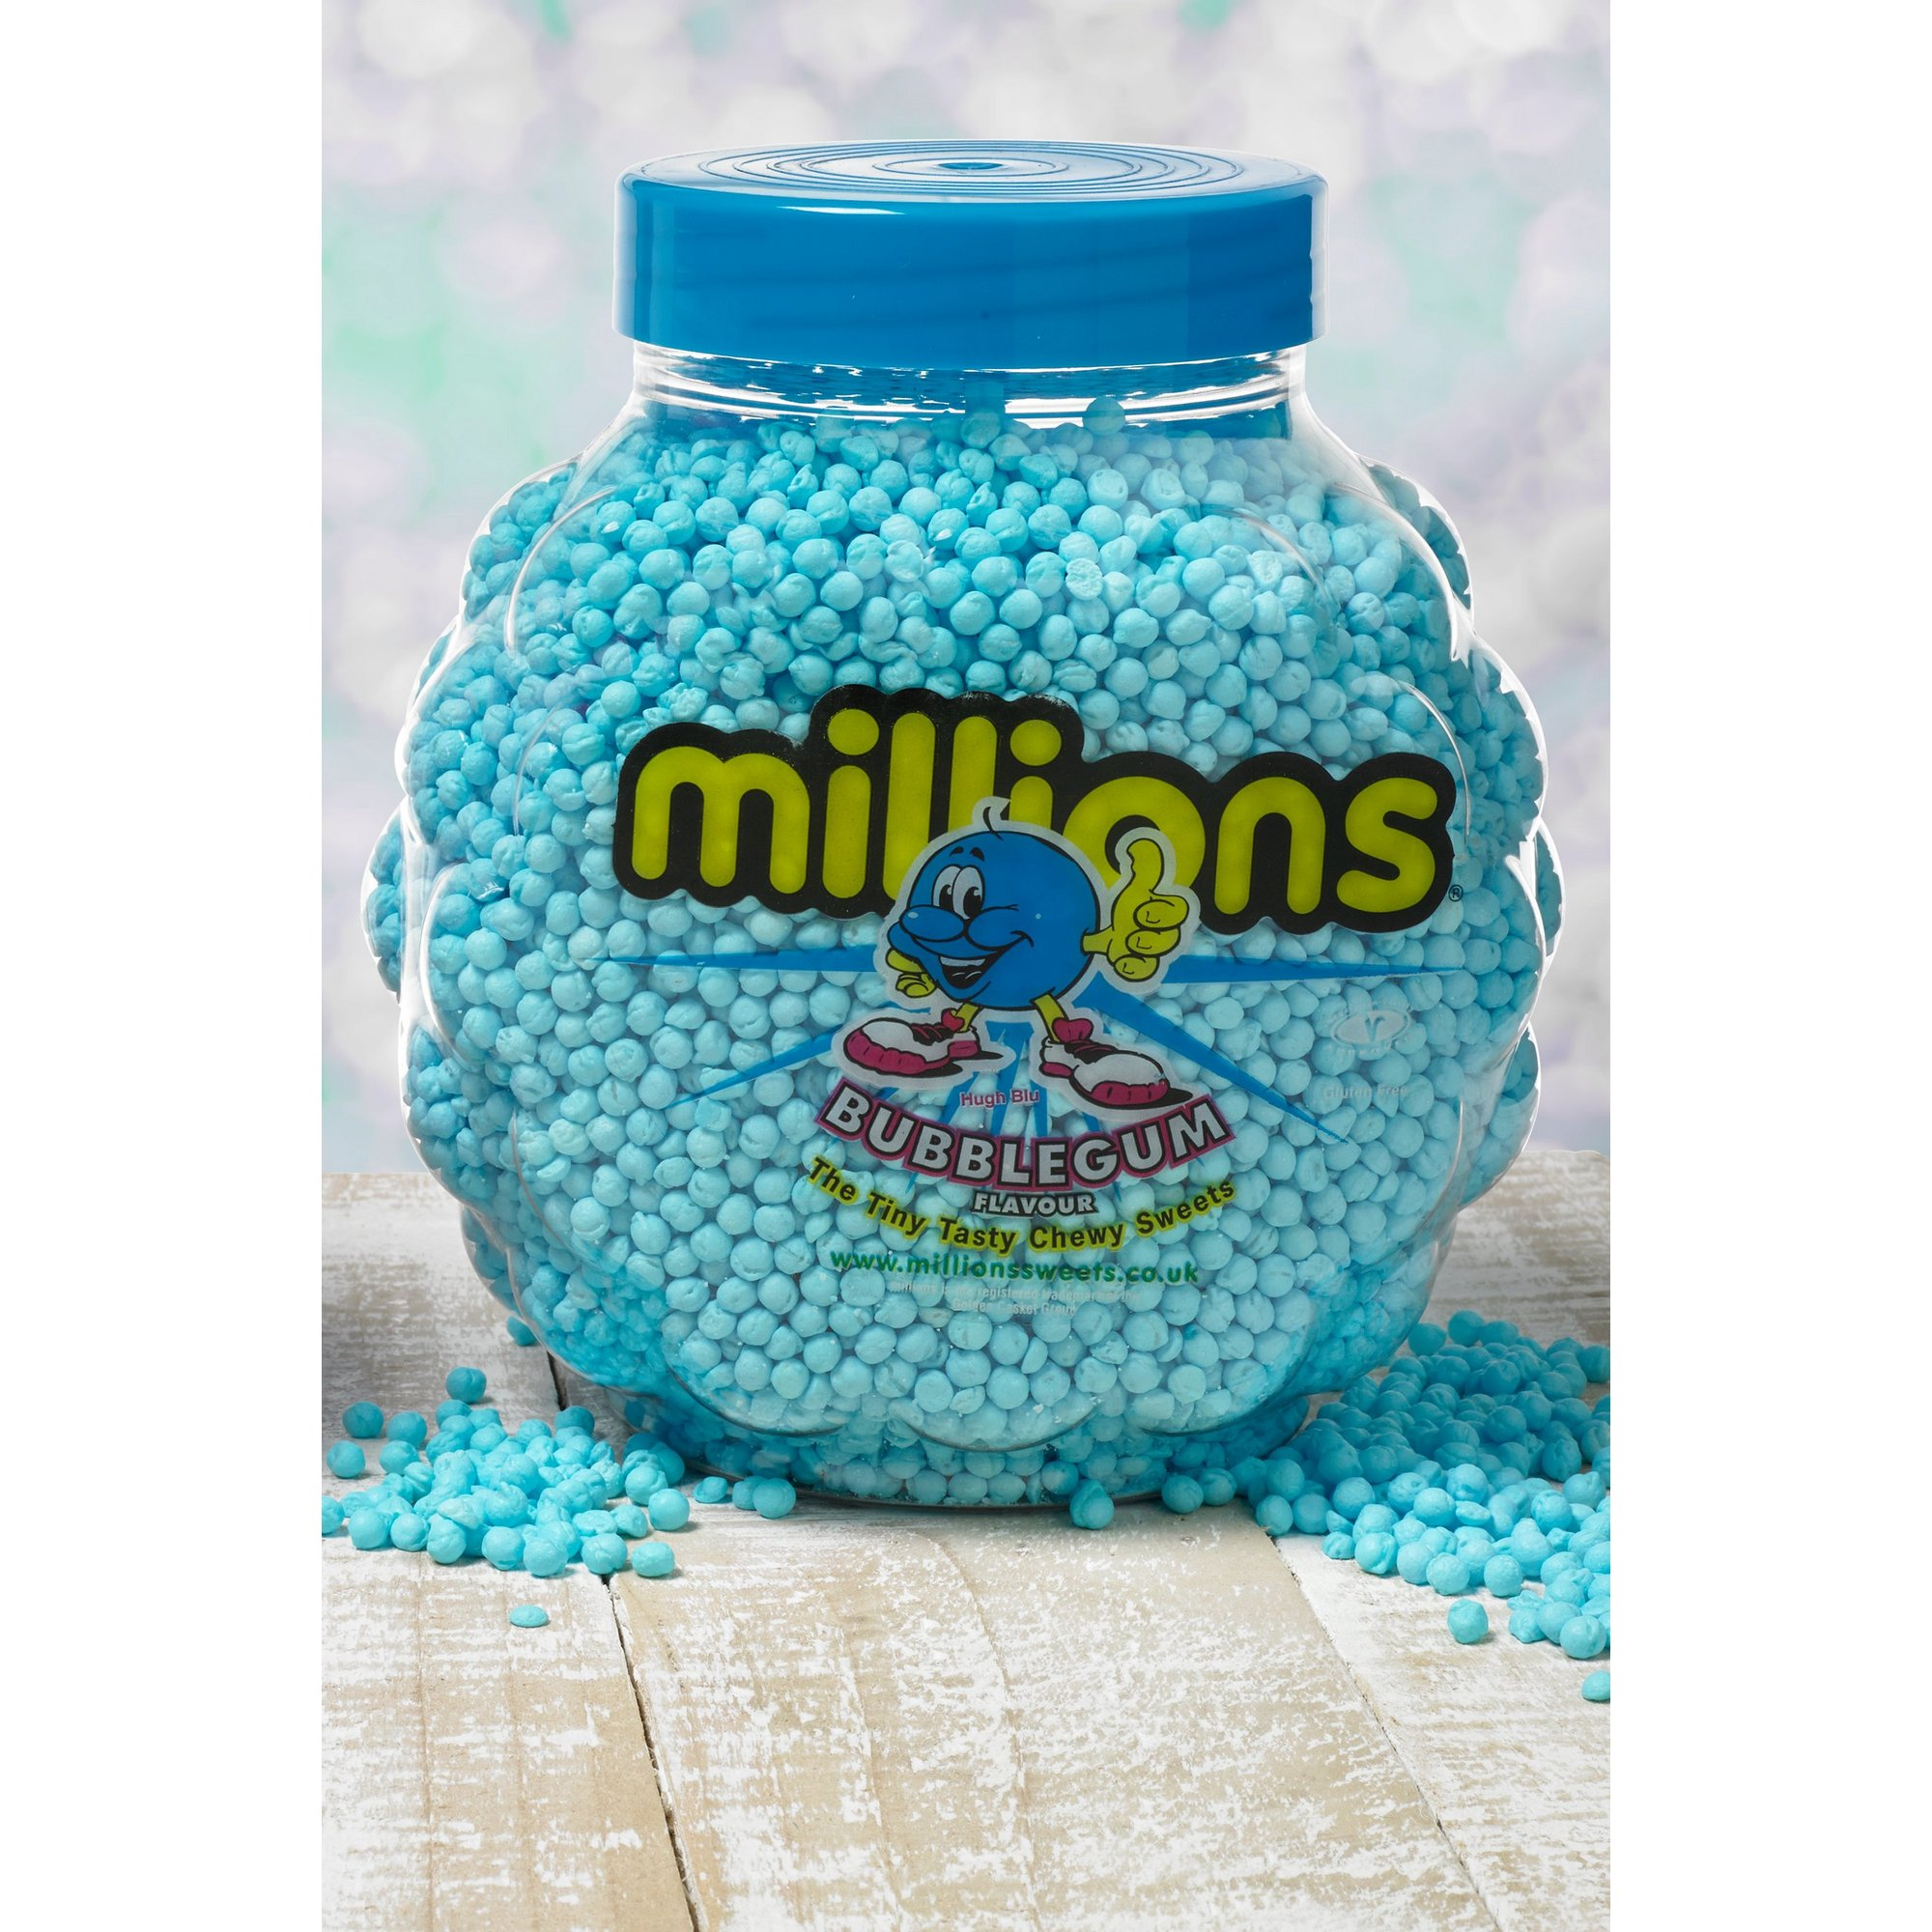 Image of Bubblegum Millions Jar